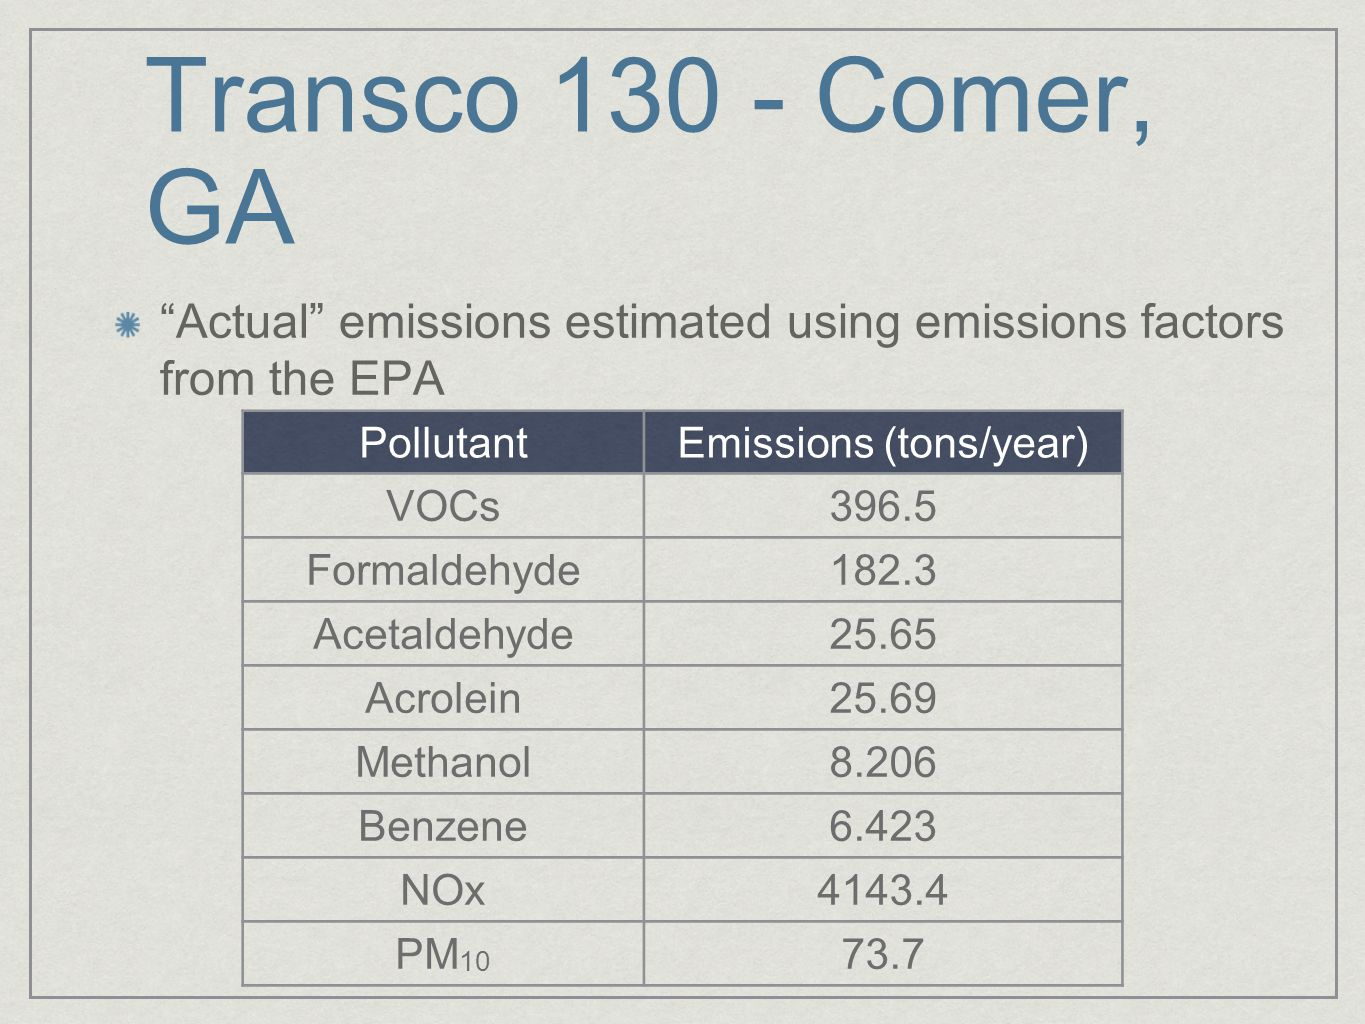 Transco 130 - Comer, GA Actual emissions estimated using emissions factors from the EPA PollutantEmissions (tons/year) VOCs396.5 Formaldehyde182.3 Acetaldehyde25.65 Acrolein25.69 Methanol8.206 Benzene6.423 NOx4143.4 PM 10 73.7